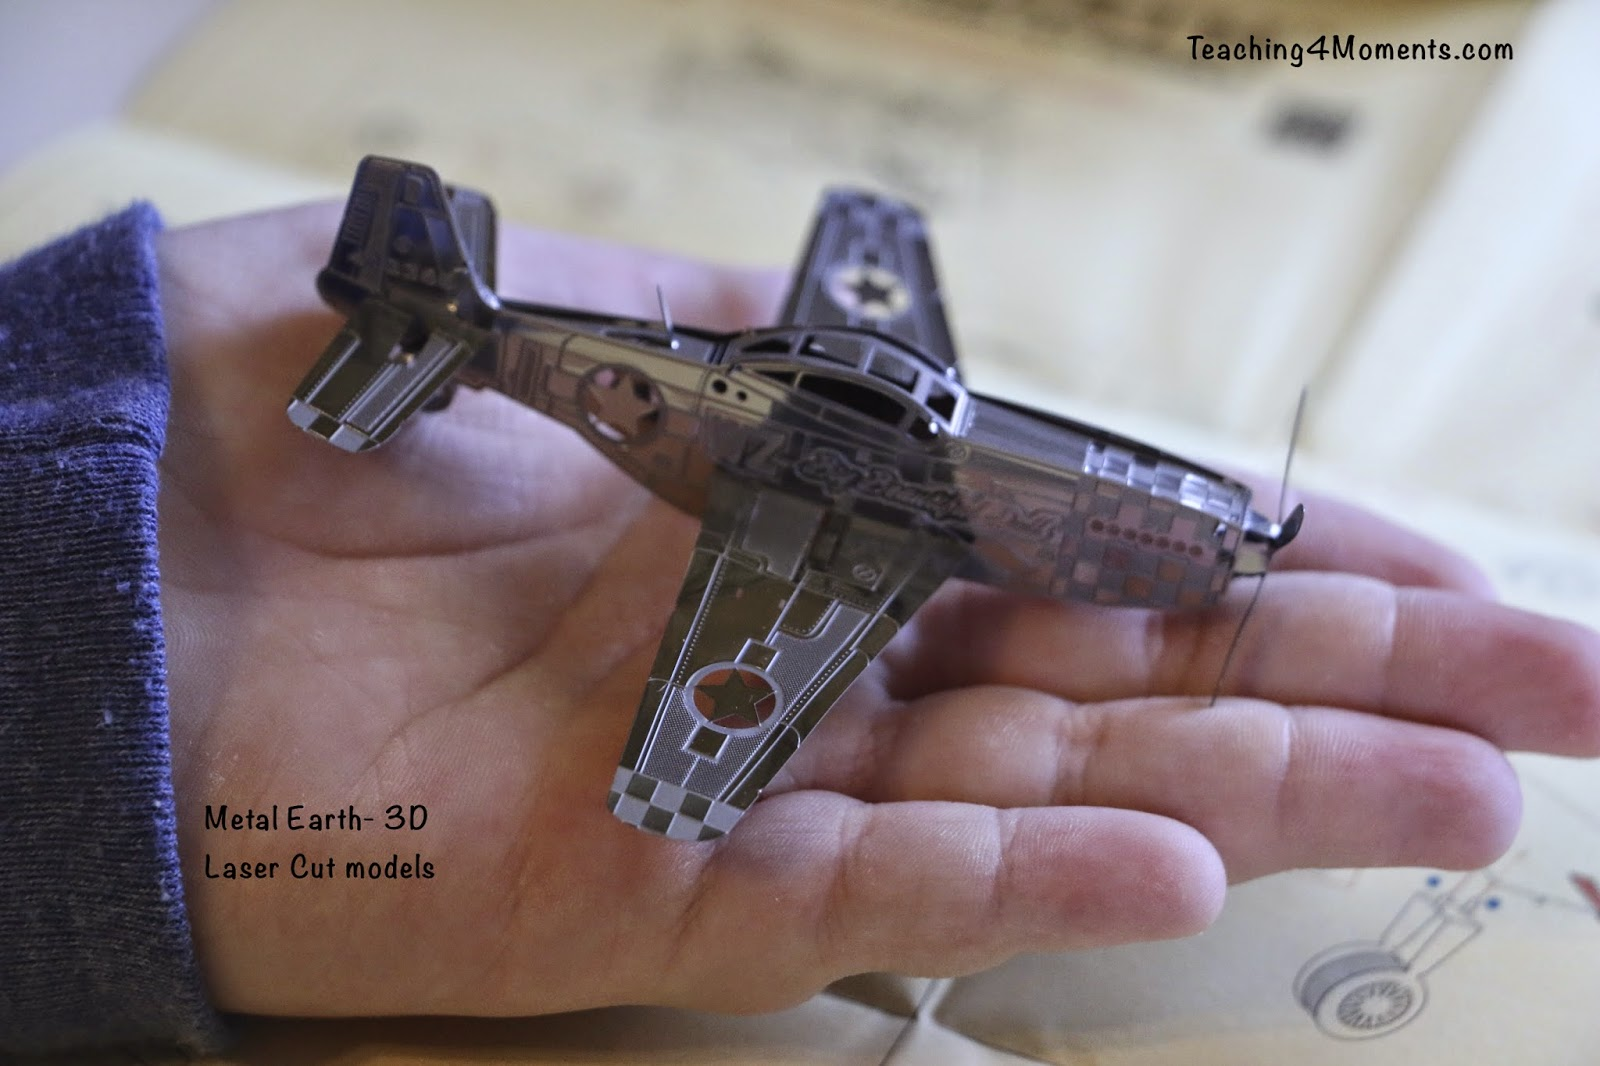 Metal Earth, 3D laser cut model